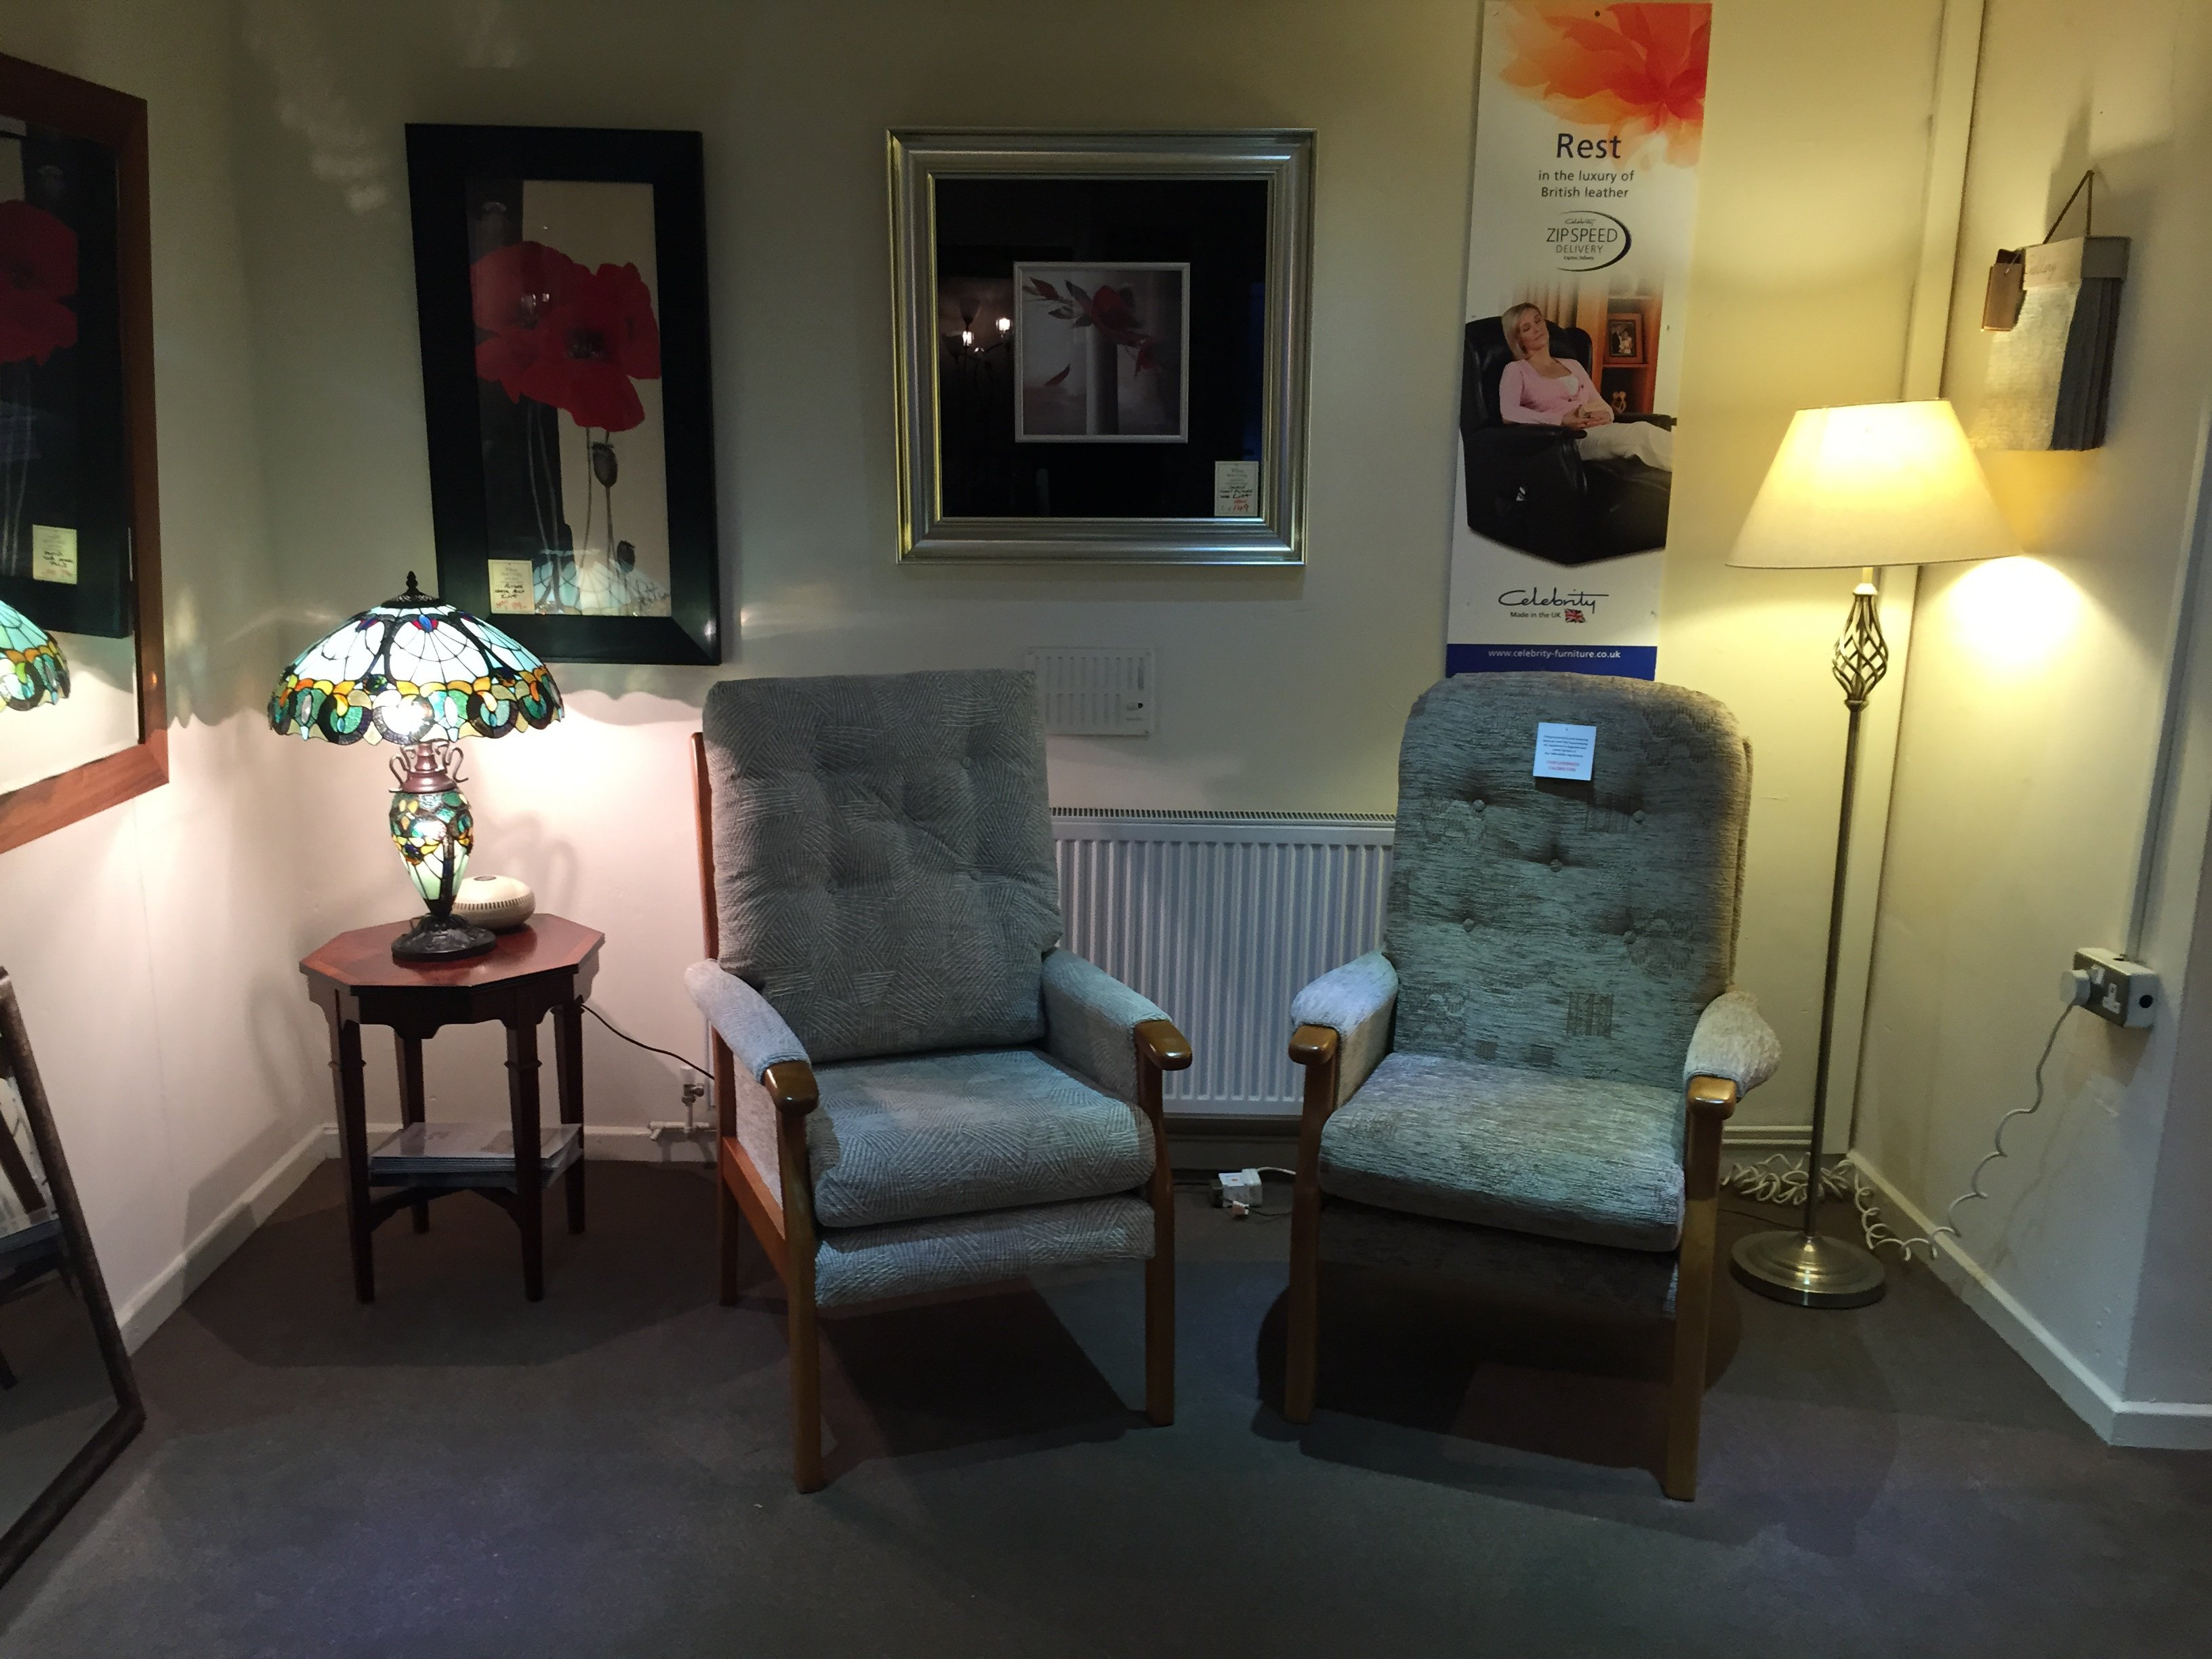 Two high-back chairs